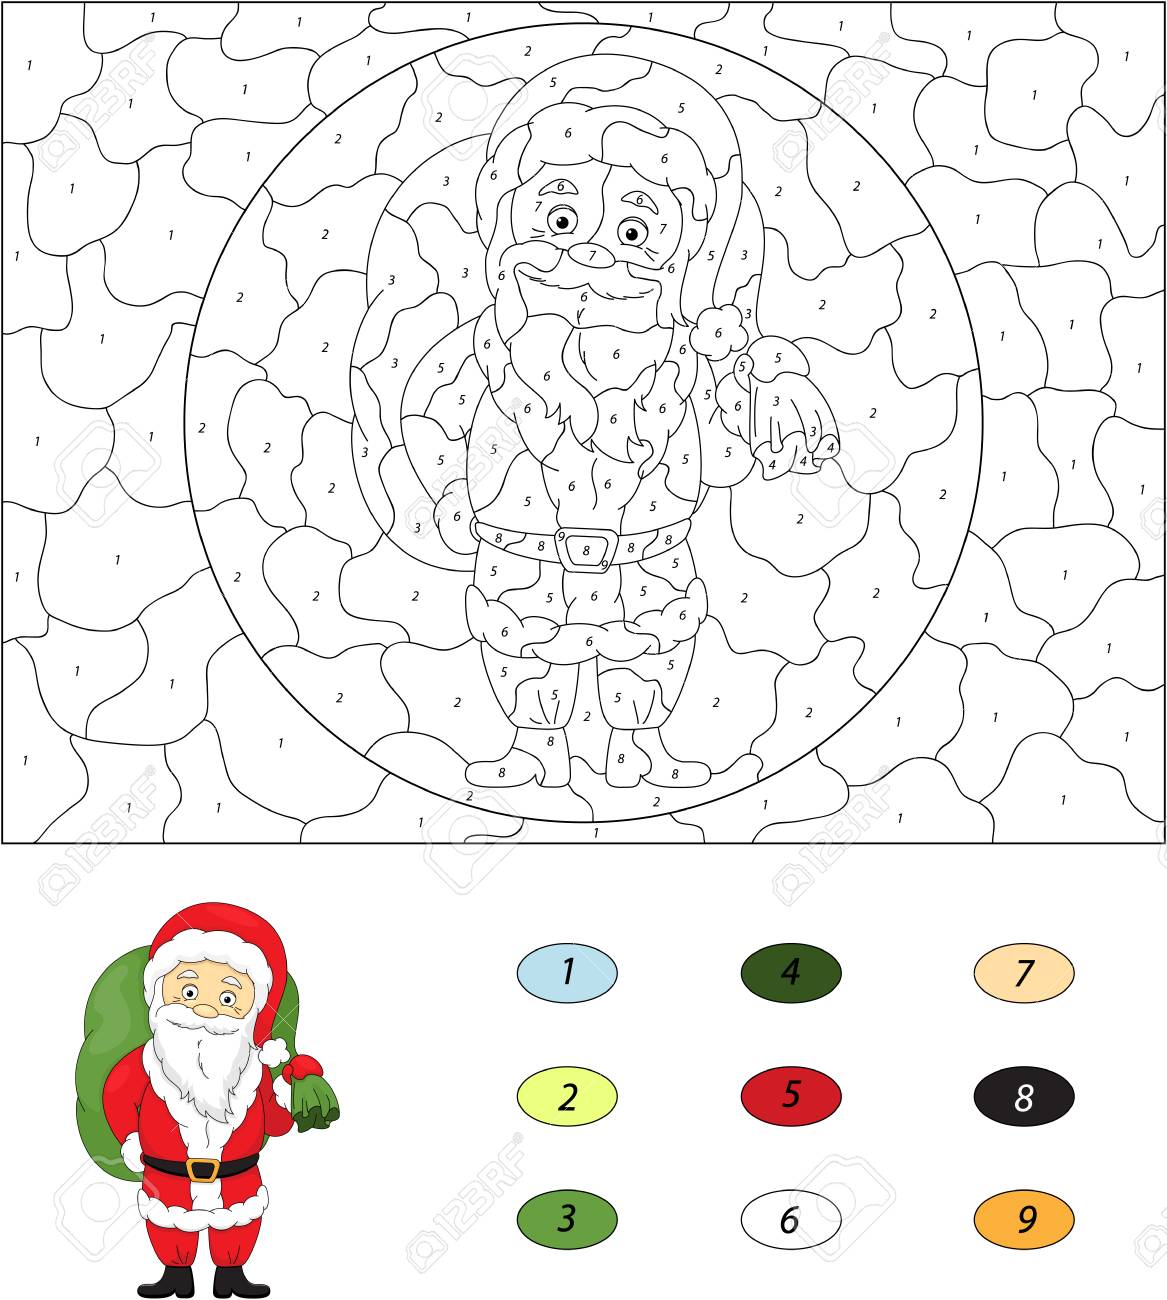 Christmas Santa (St Nicolas). Color by number educational game..